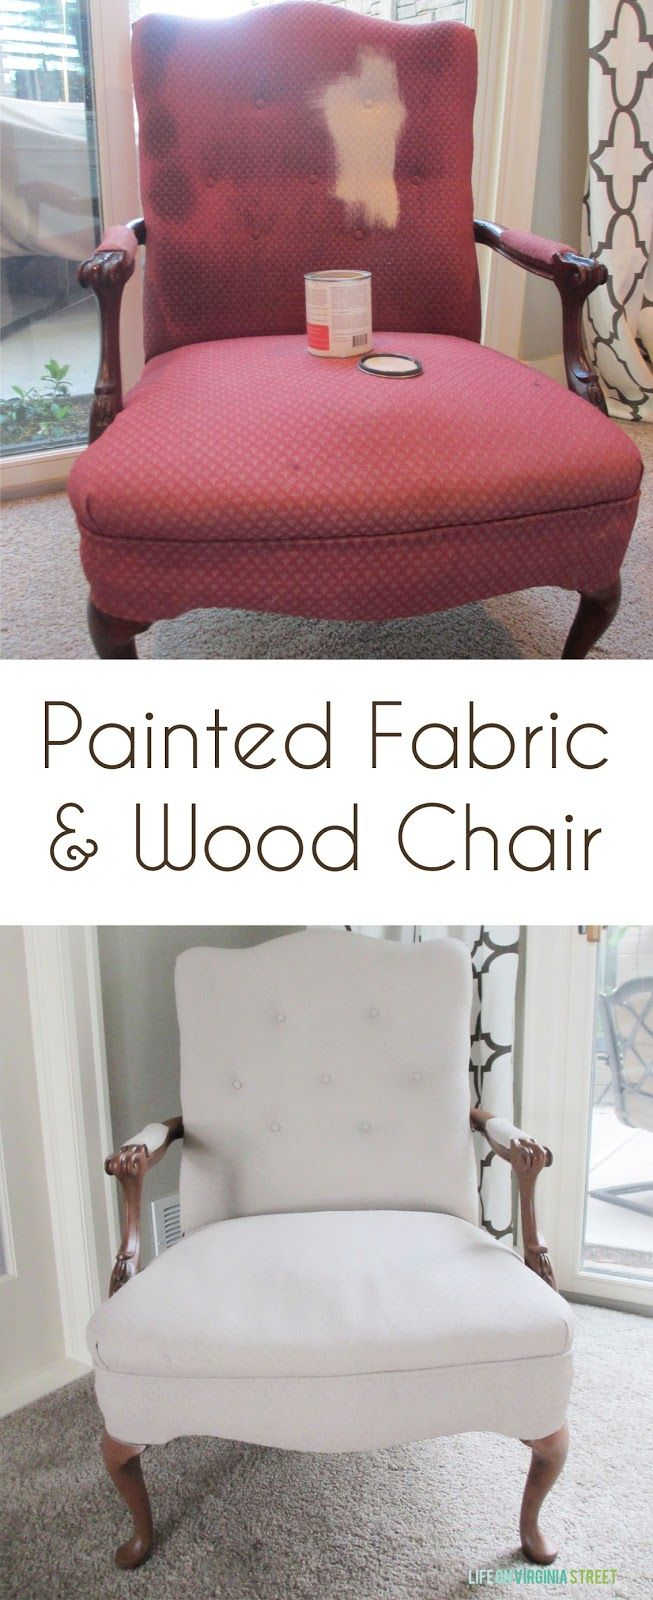 Telas Para Tapizar Sillones Once Diy Fabric Chair Makeover Project Painted Fabric Wood Objeto